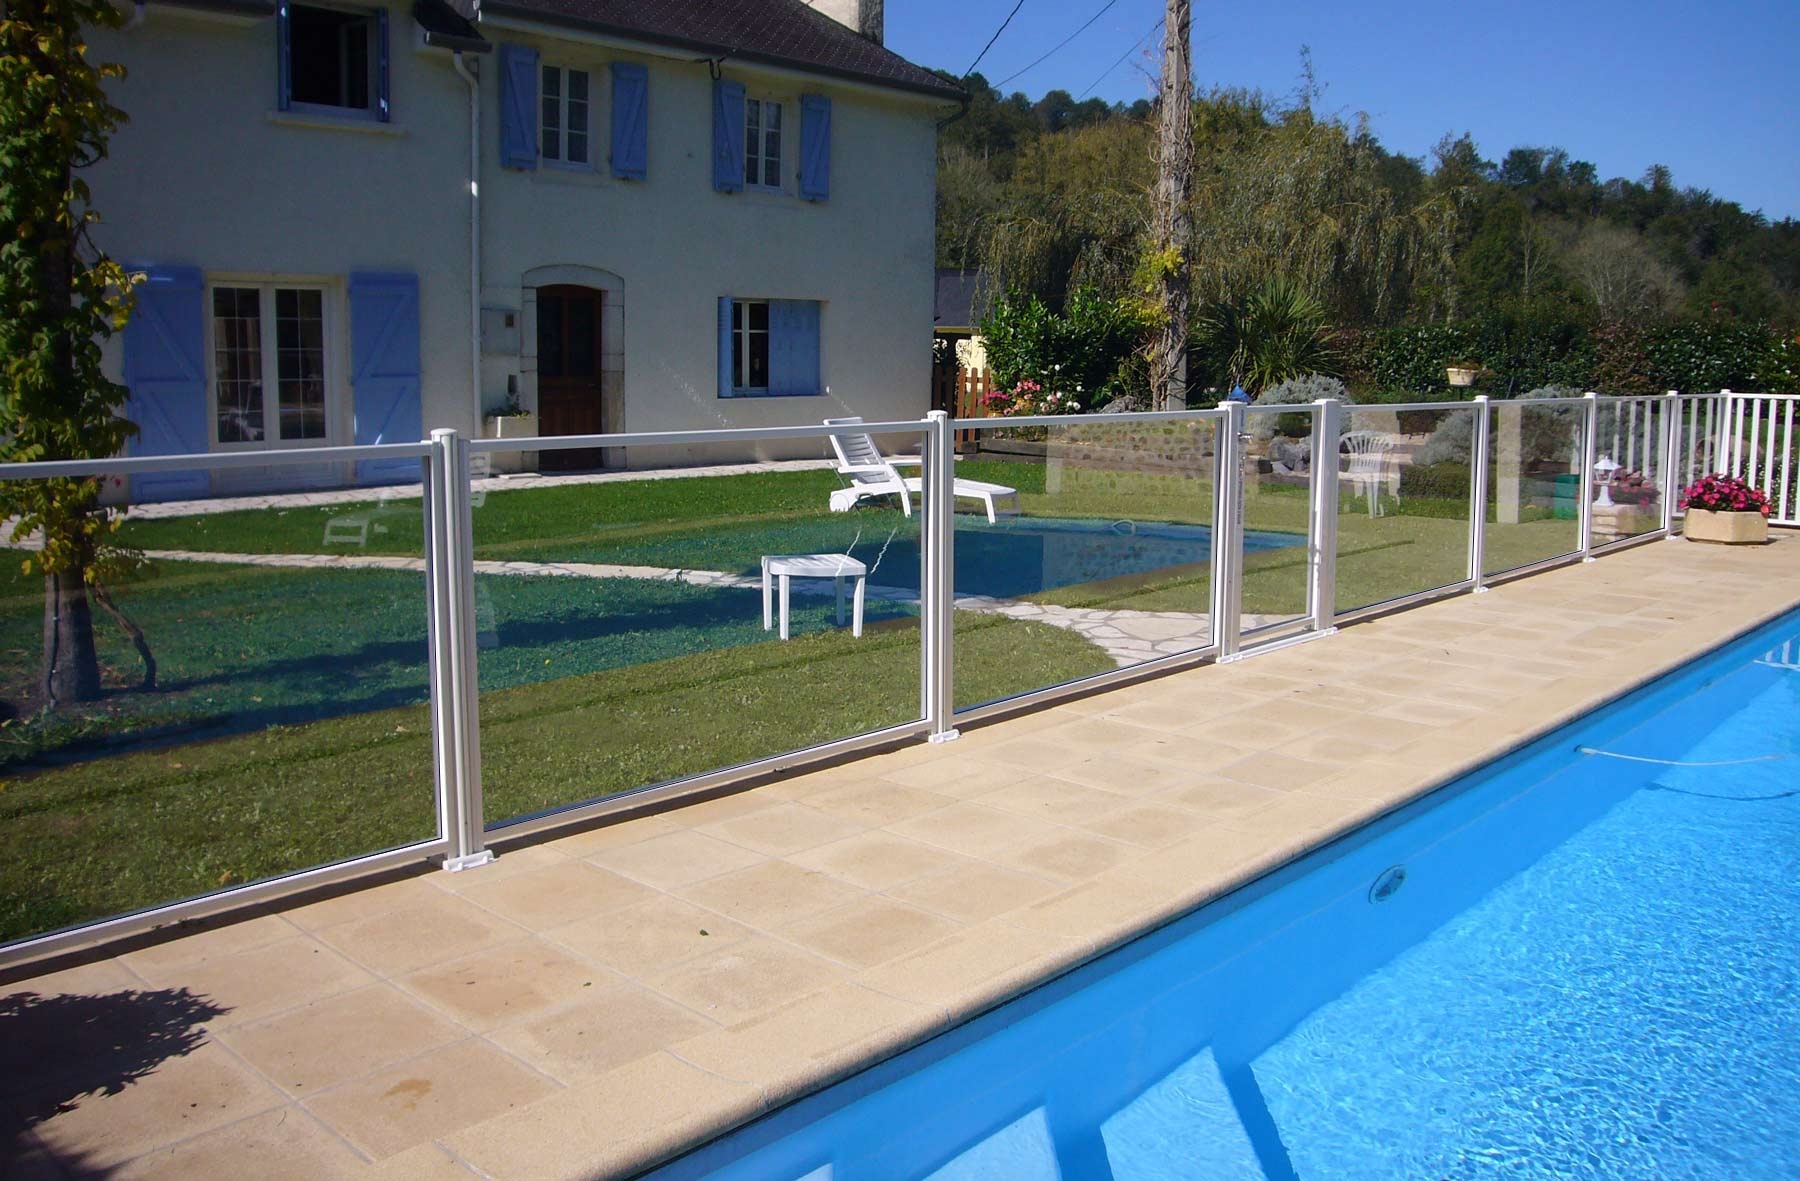 Barriere protection piscine transparente les barri res for Barriere de protection piscine